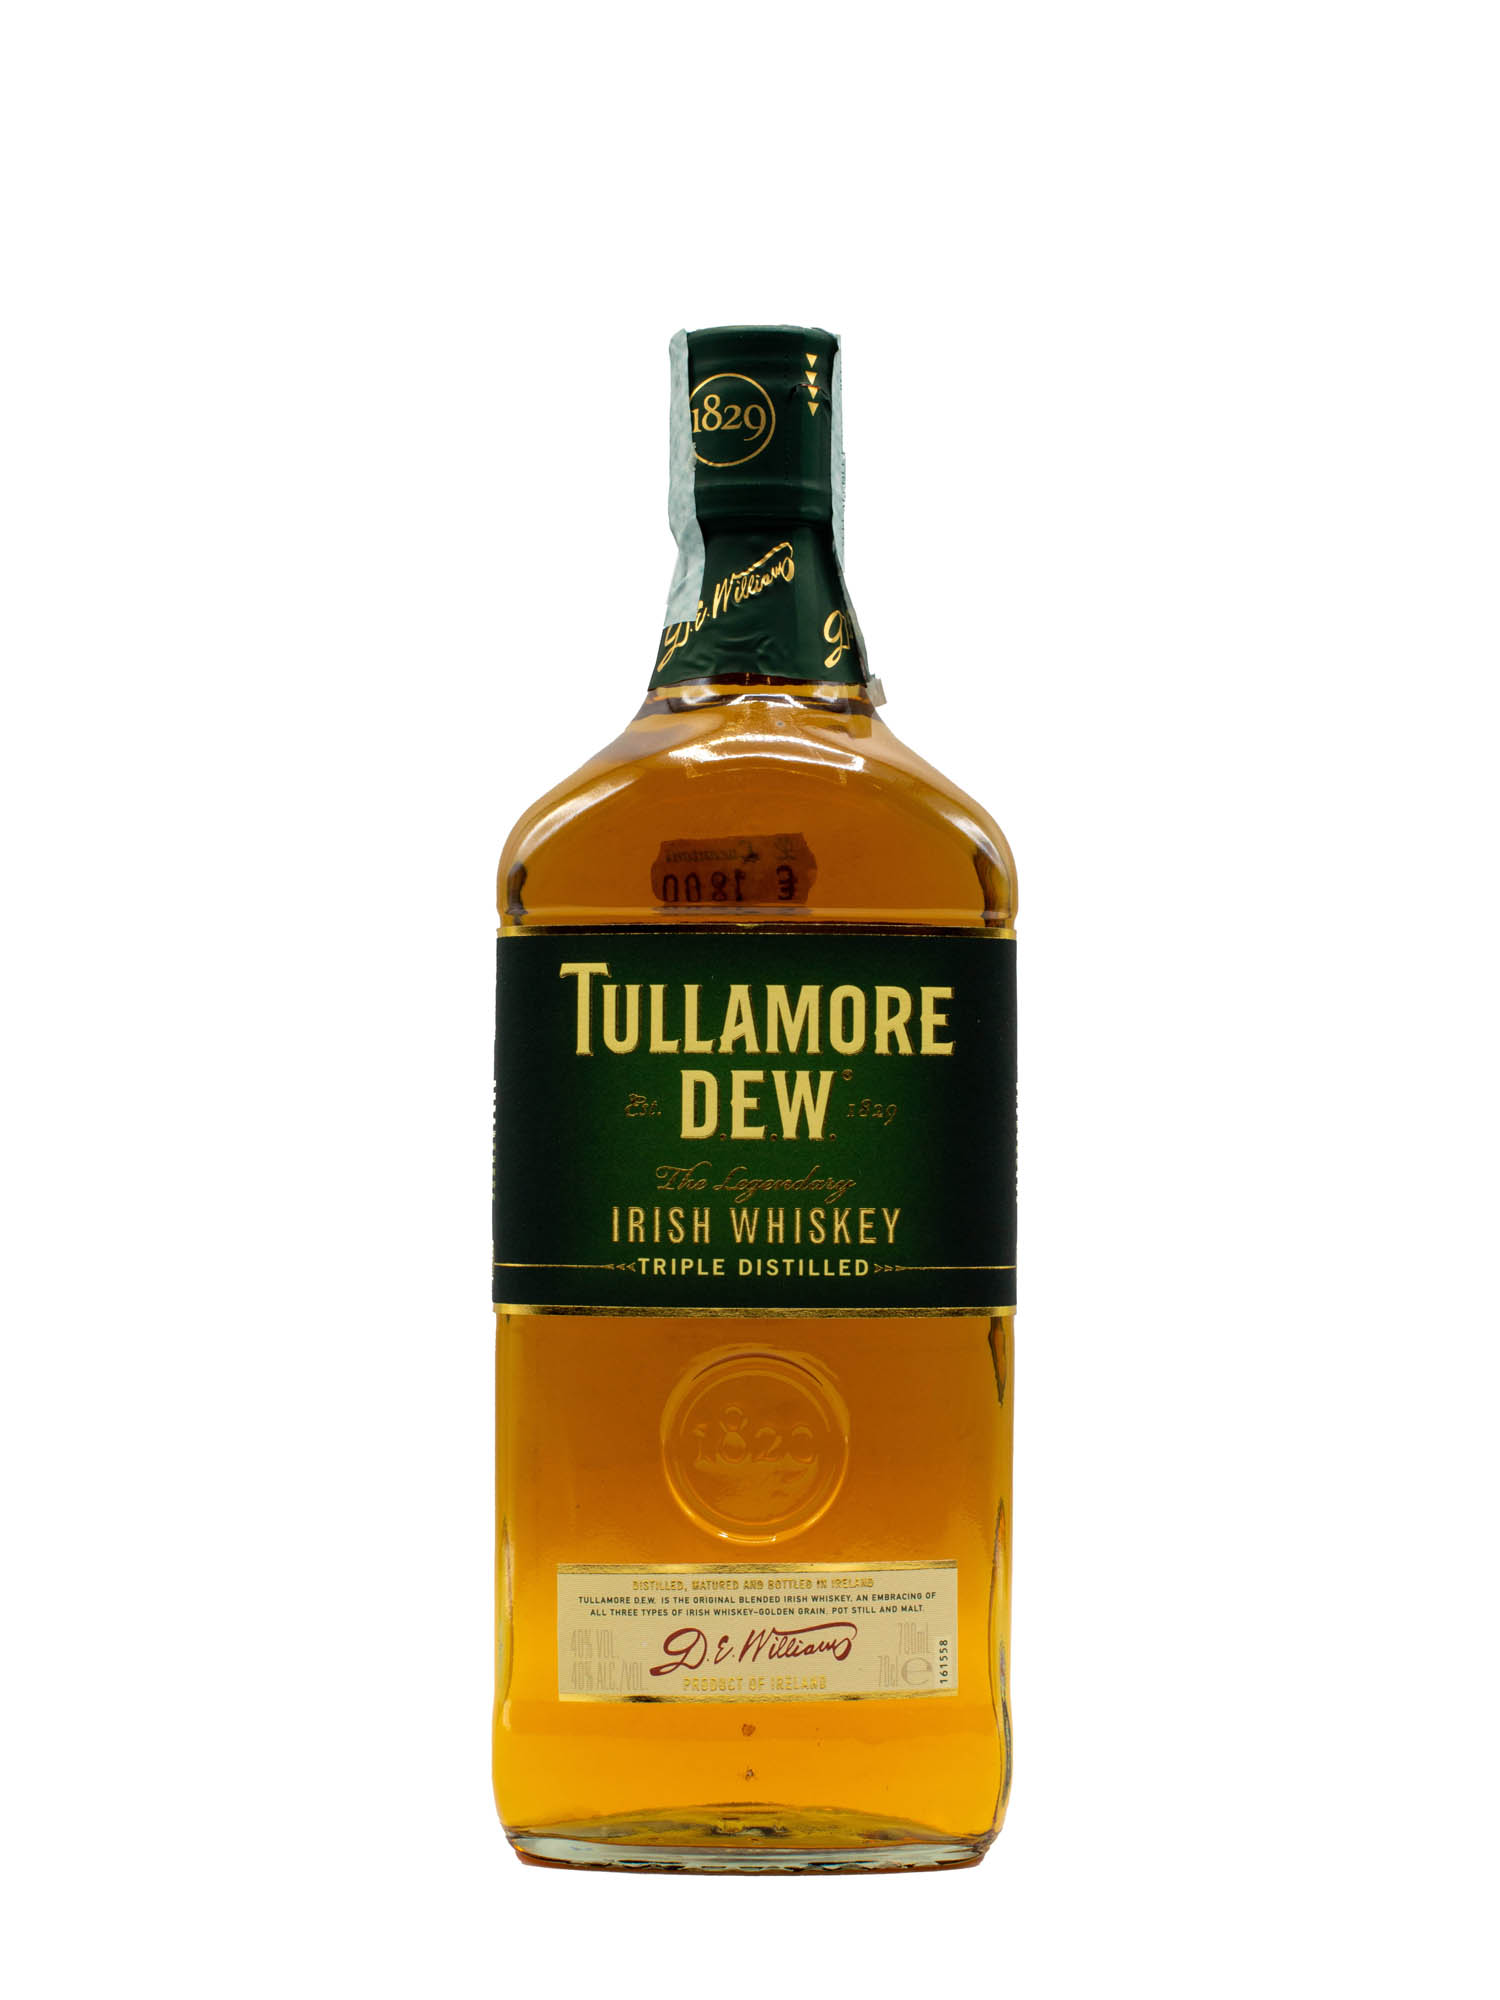 WHISKY TULLAMORE DEW SPECIAL